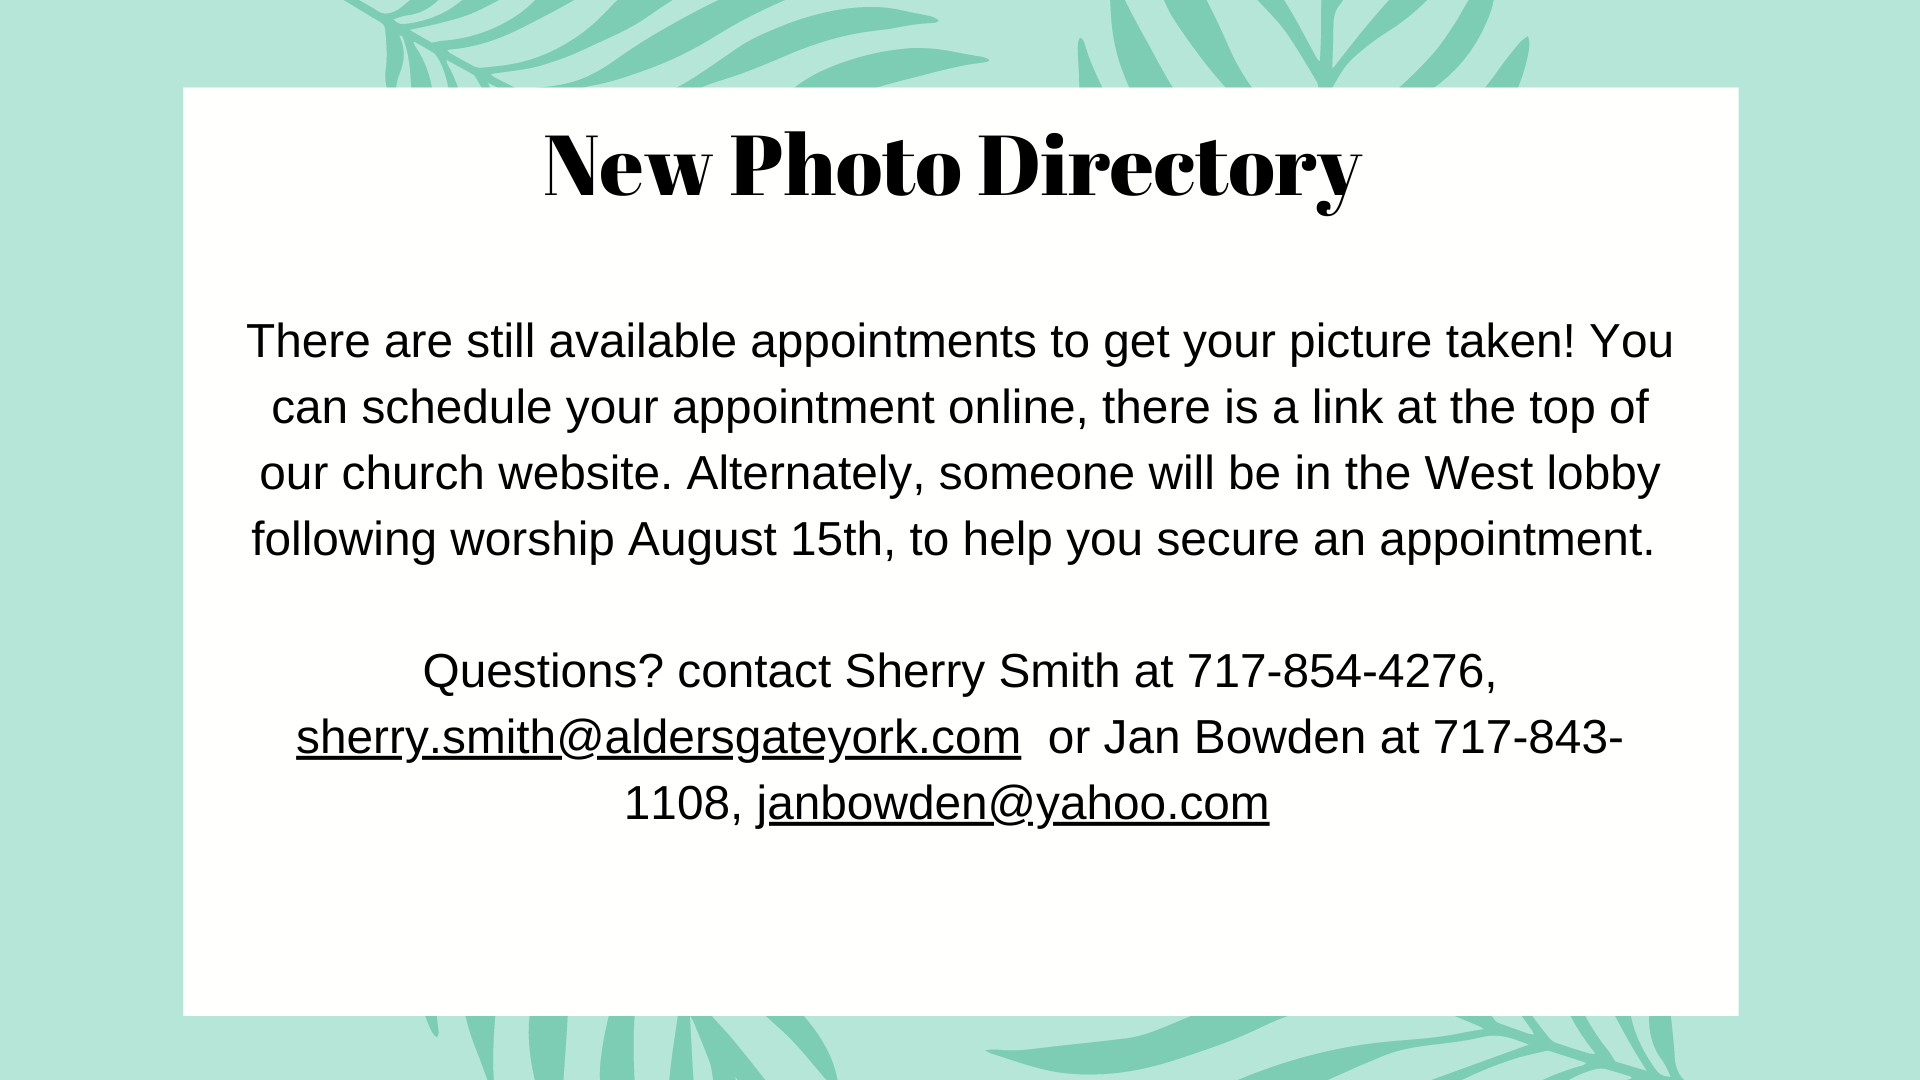 Appointments still available!